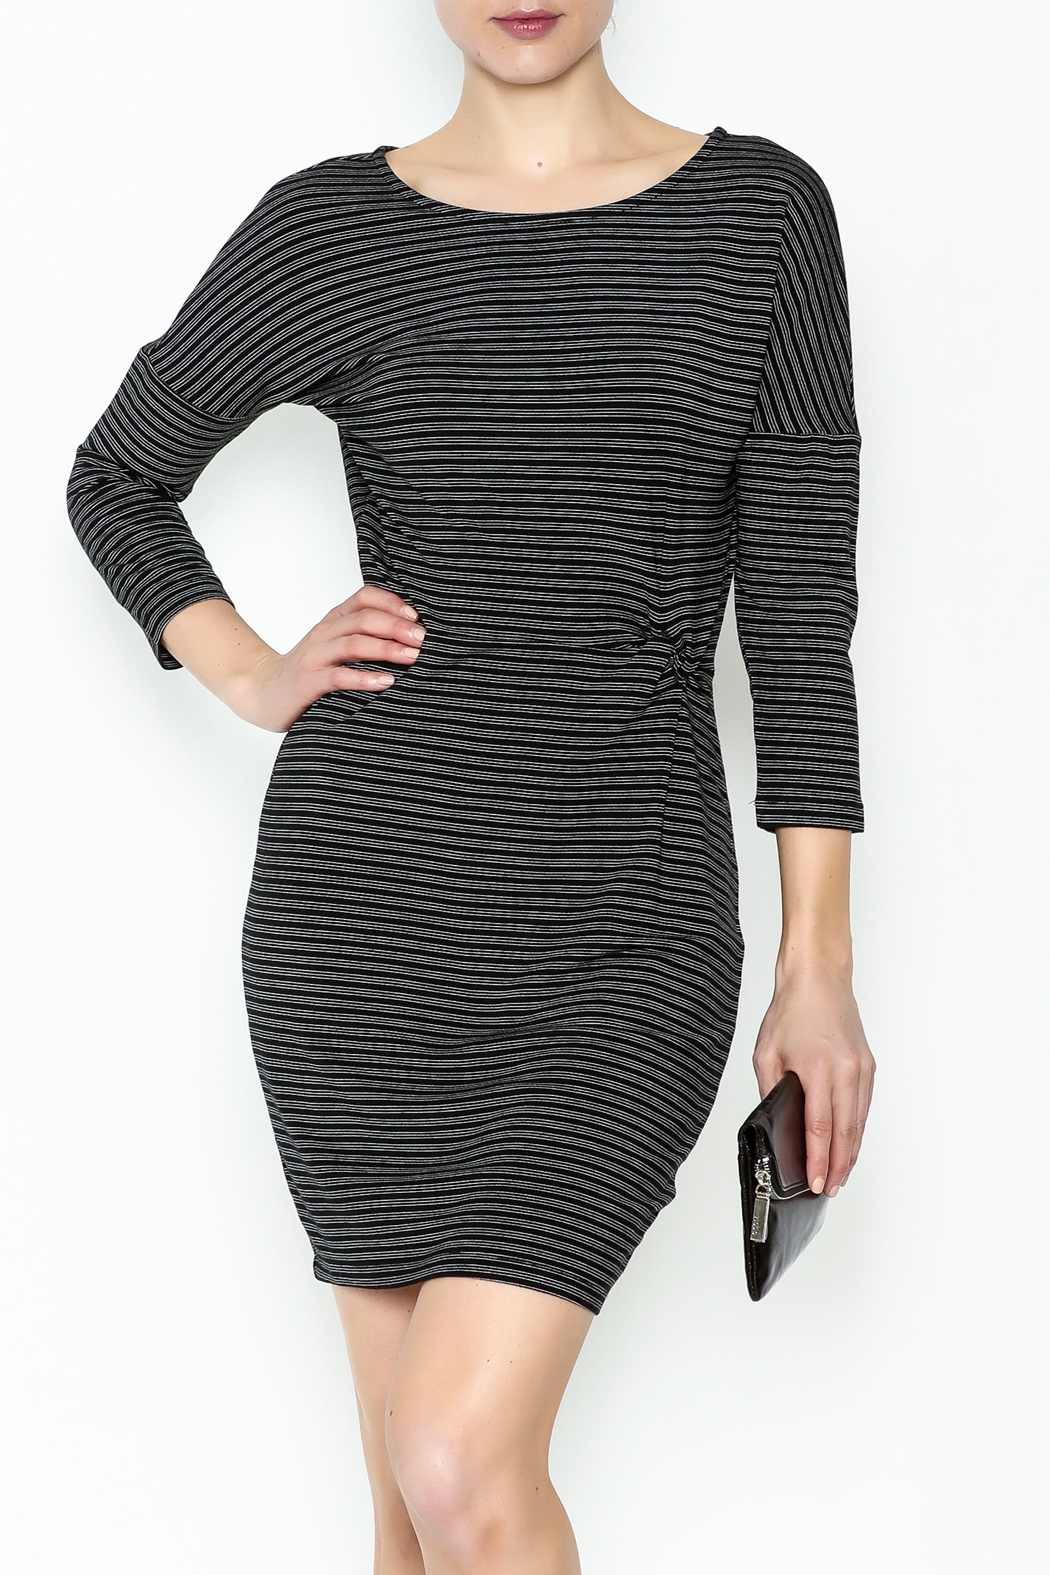 Cupcakes and Cashmere Waist Flattering Stripe Dress - Main Image